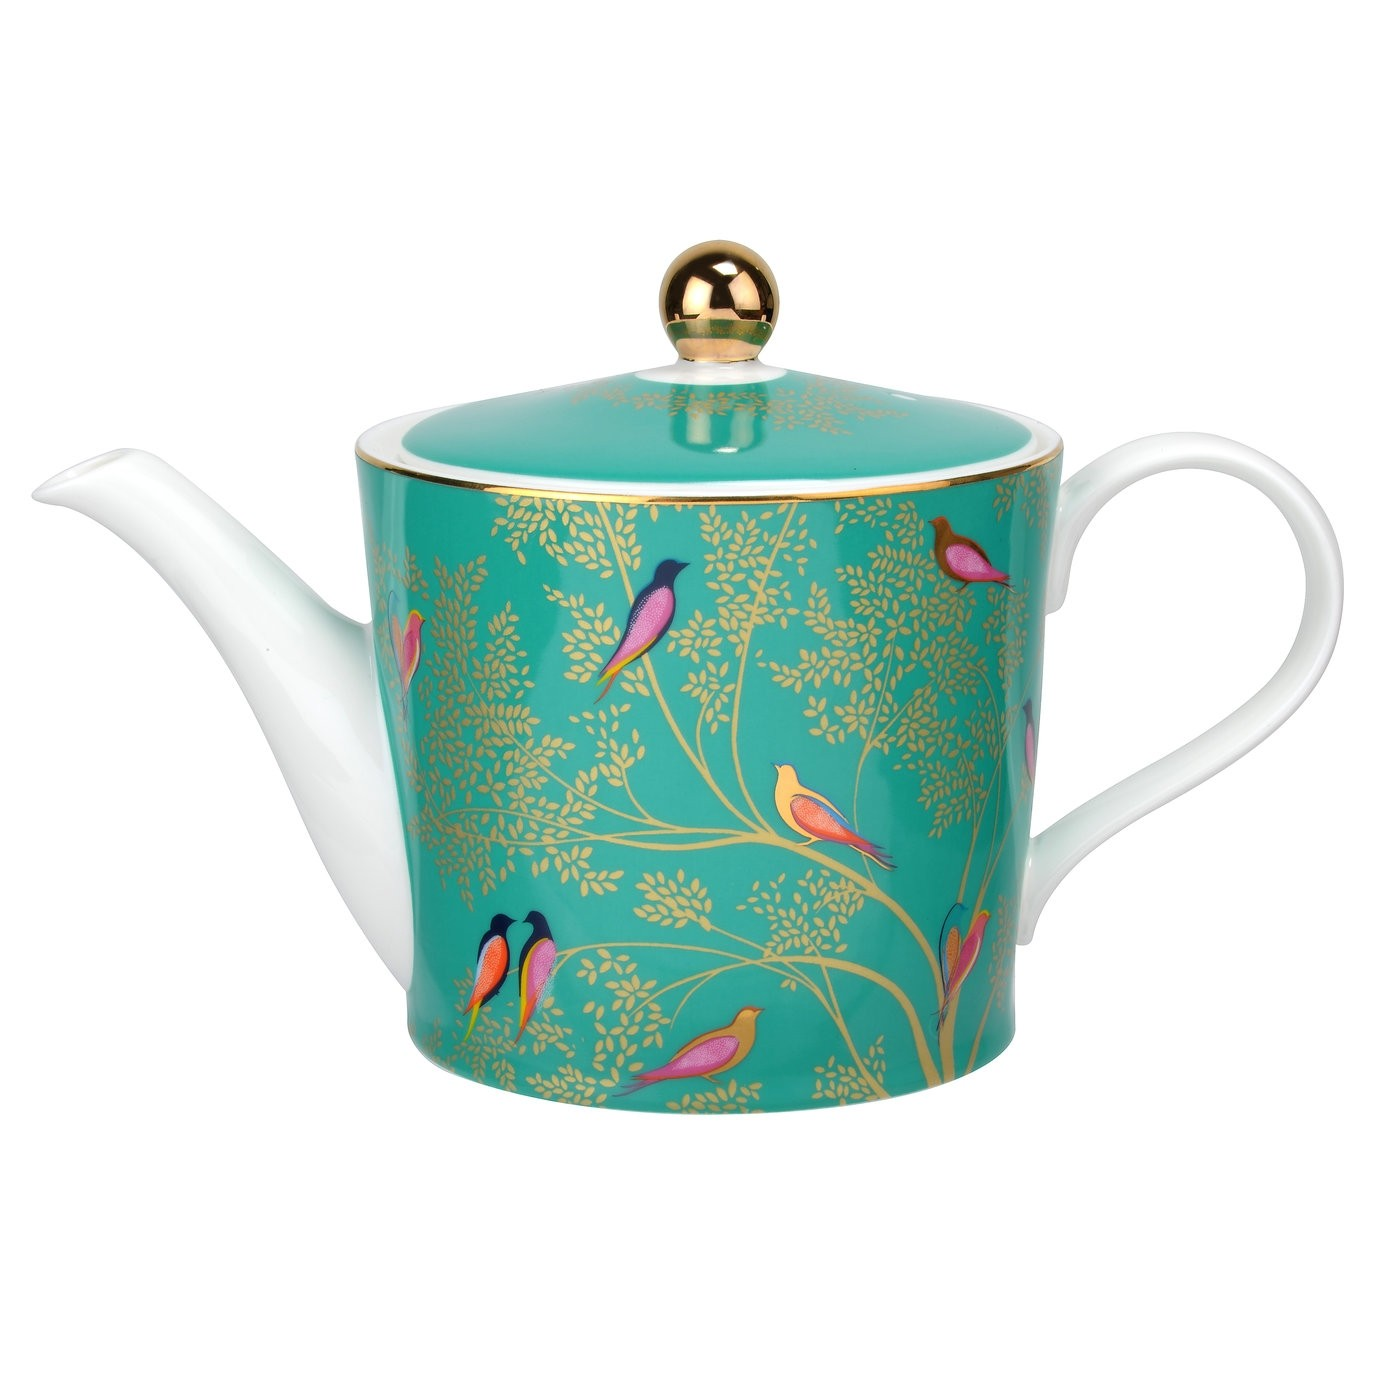 Sara Miller London for Portmeirion Chelsea Collection teapot Gift boxed